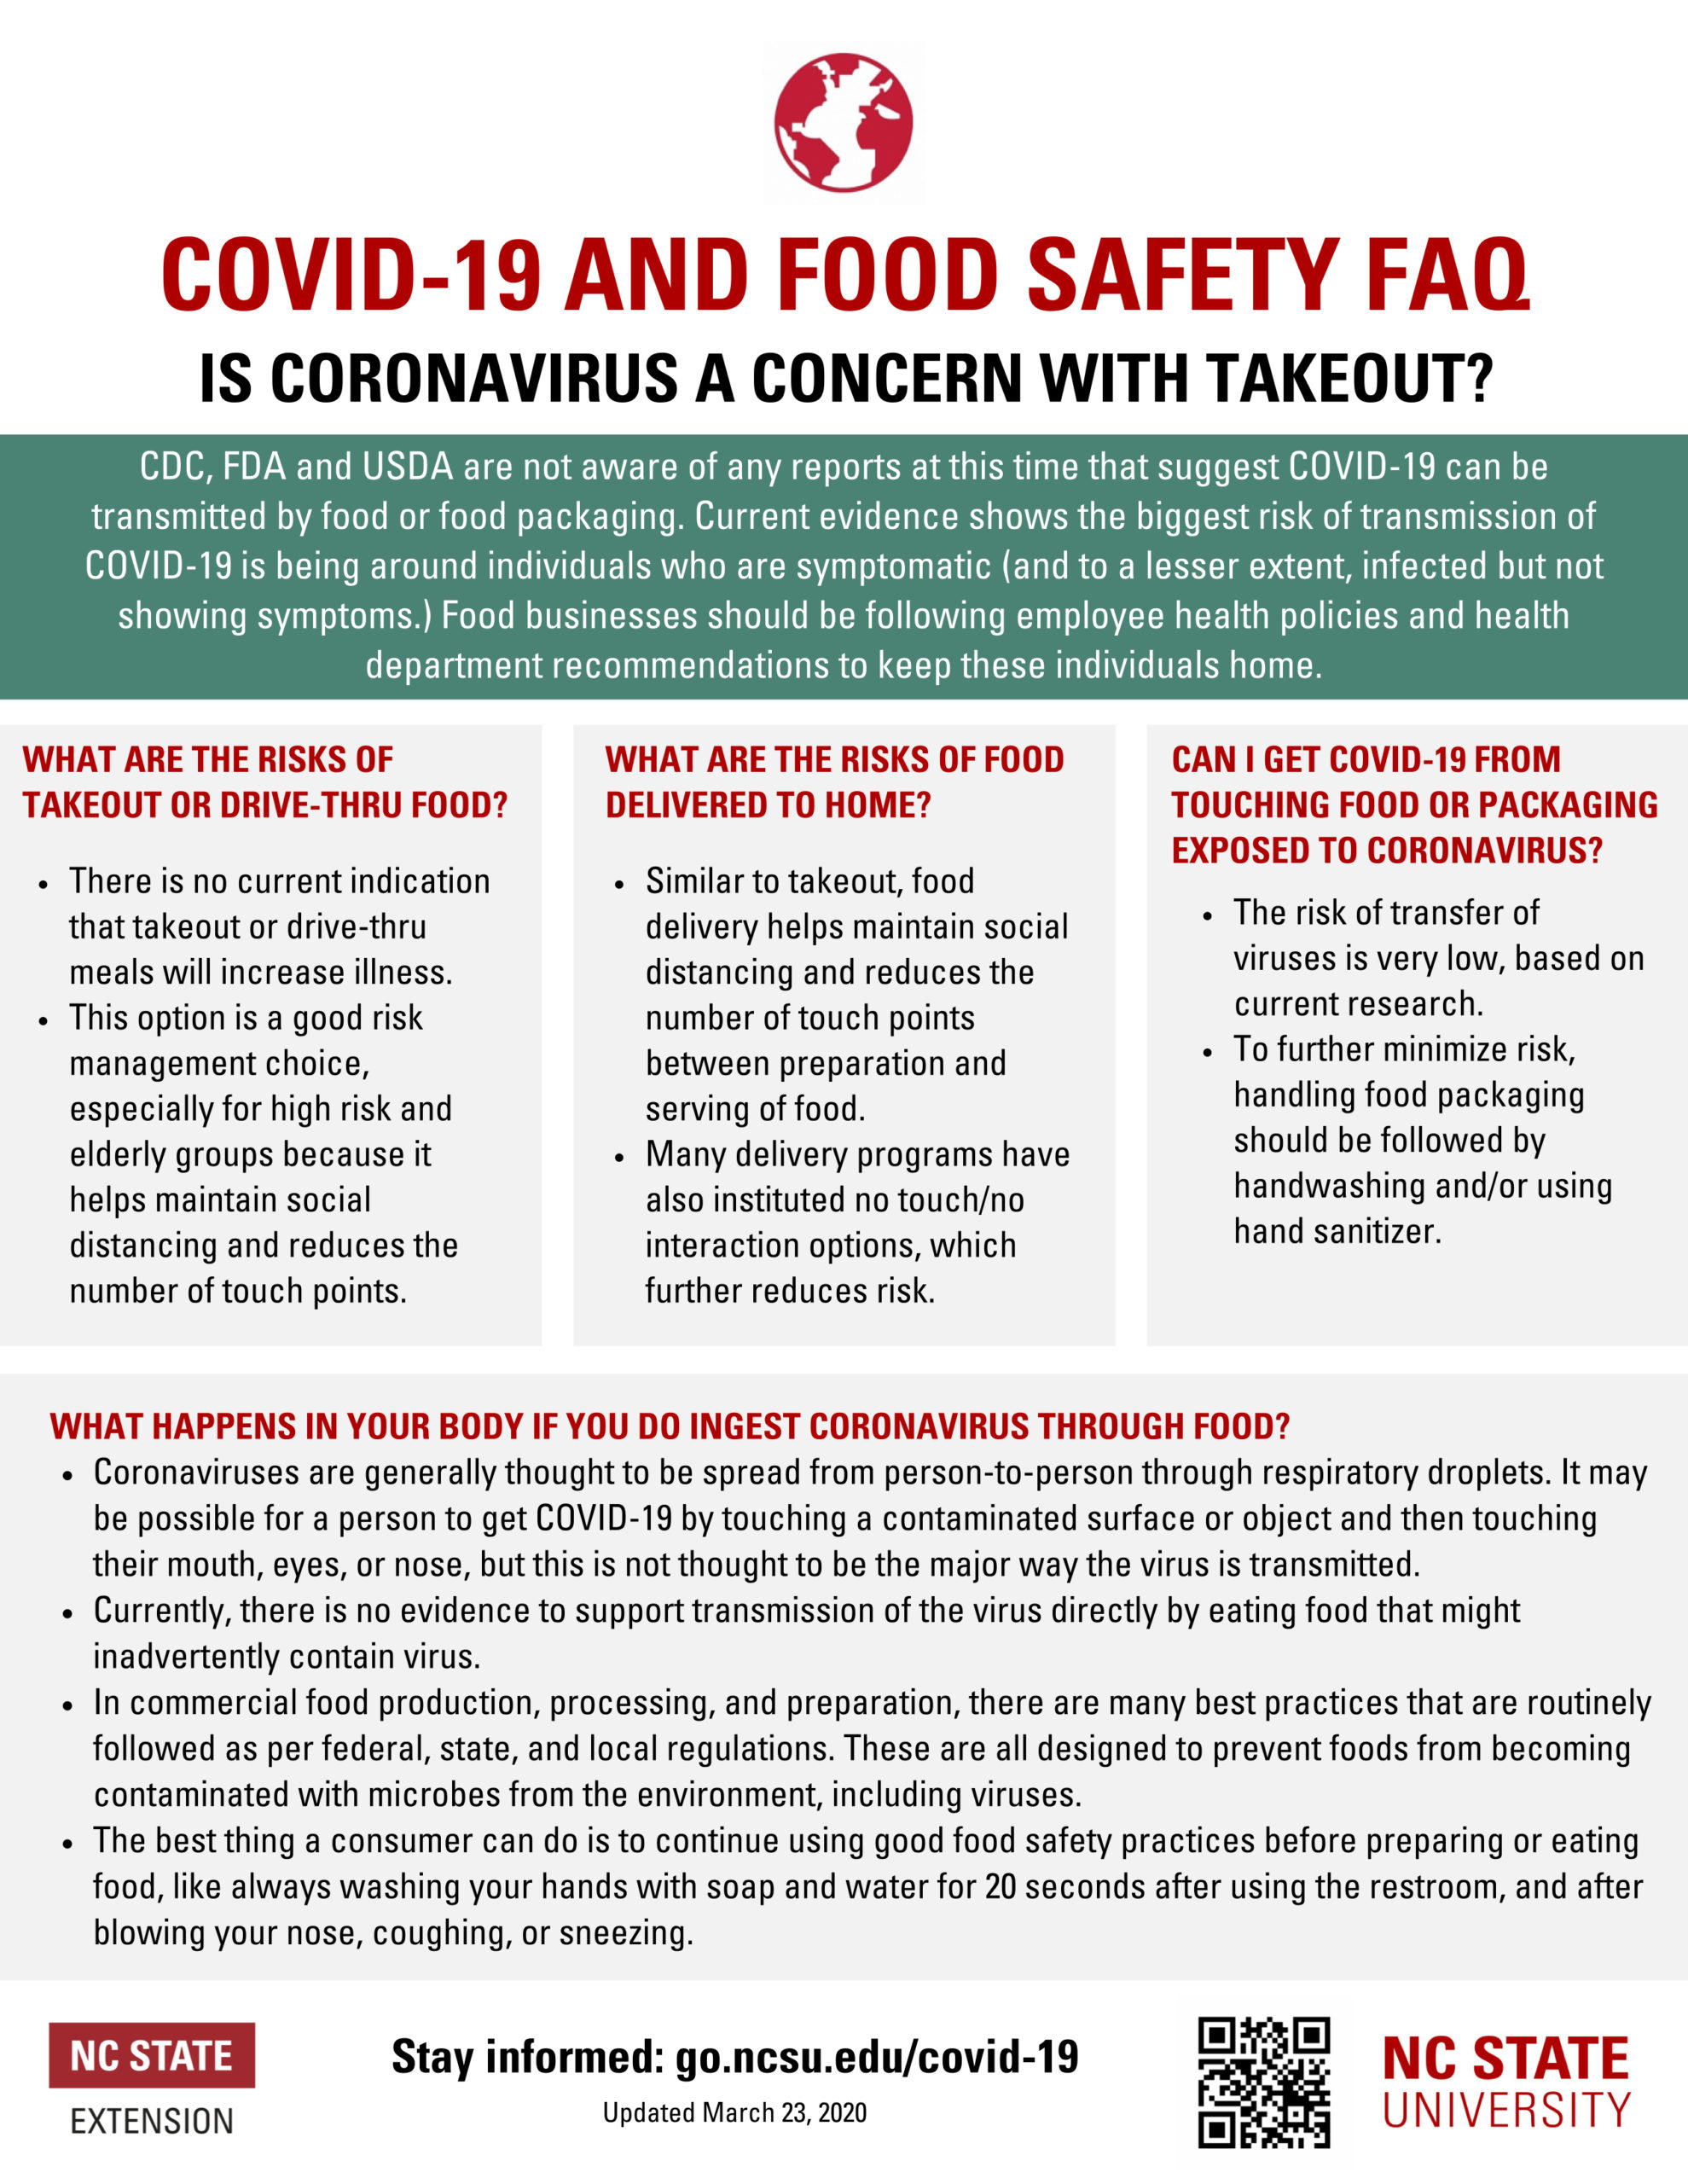 Is Coronavirus a concern with takeout